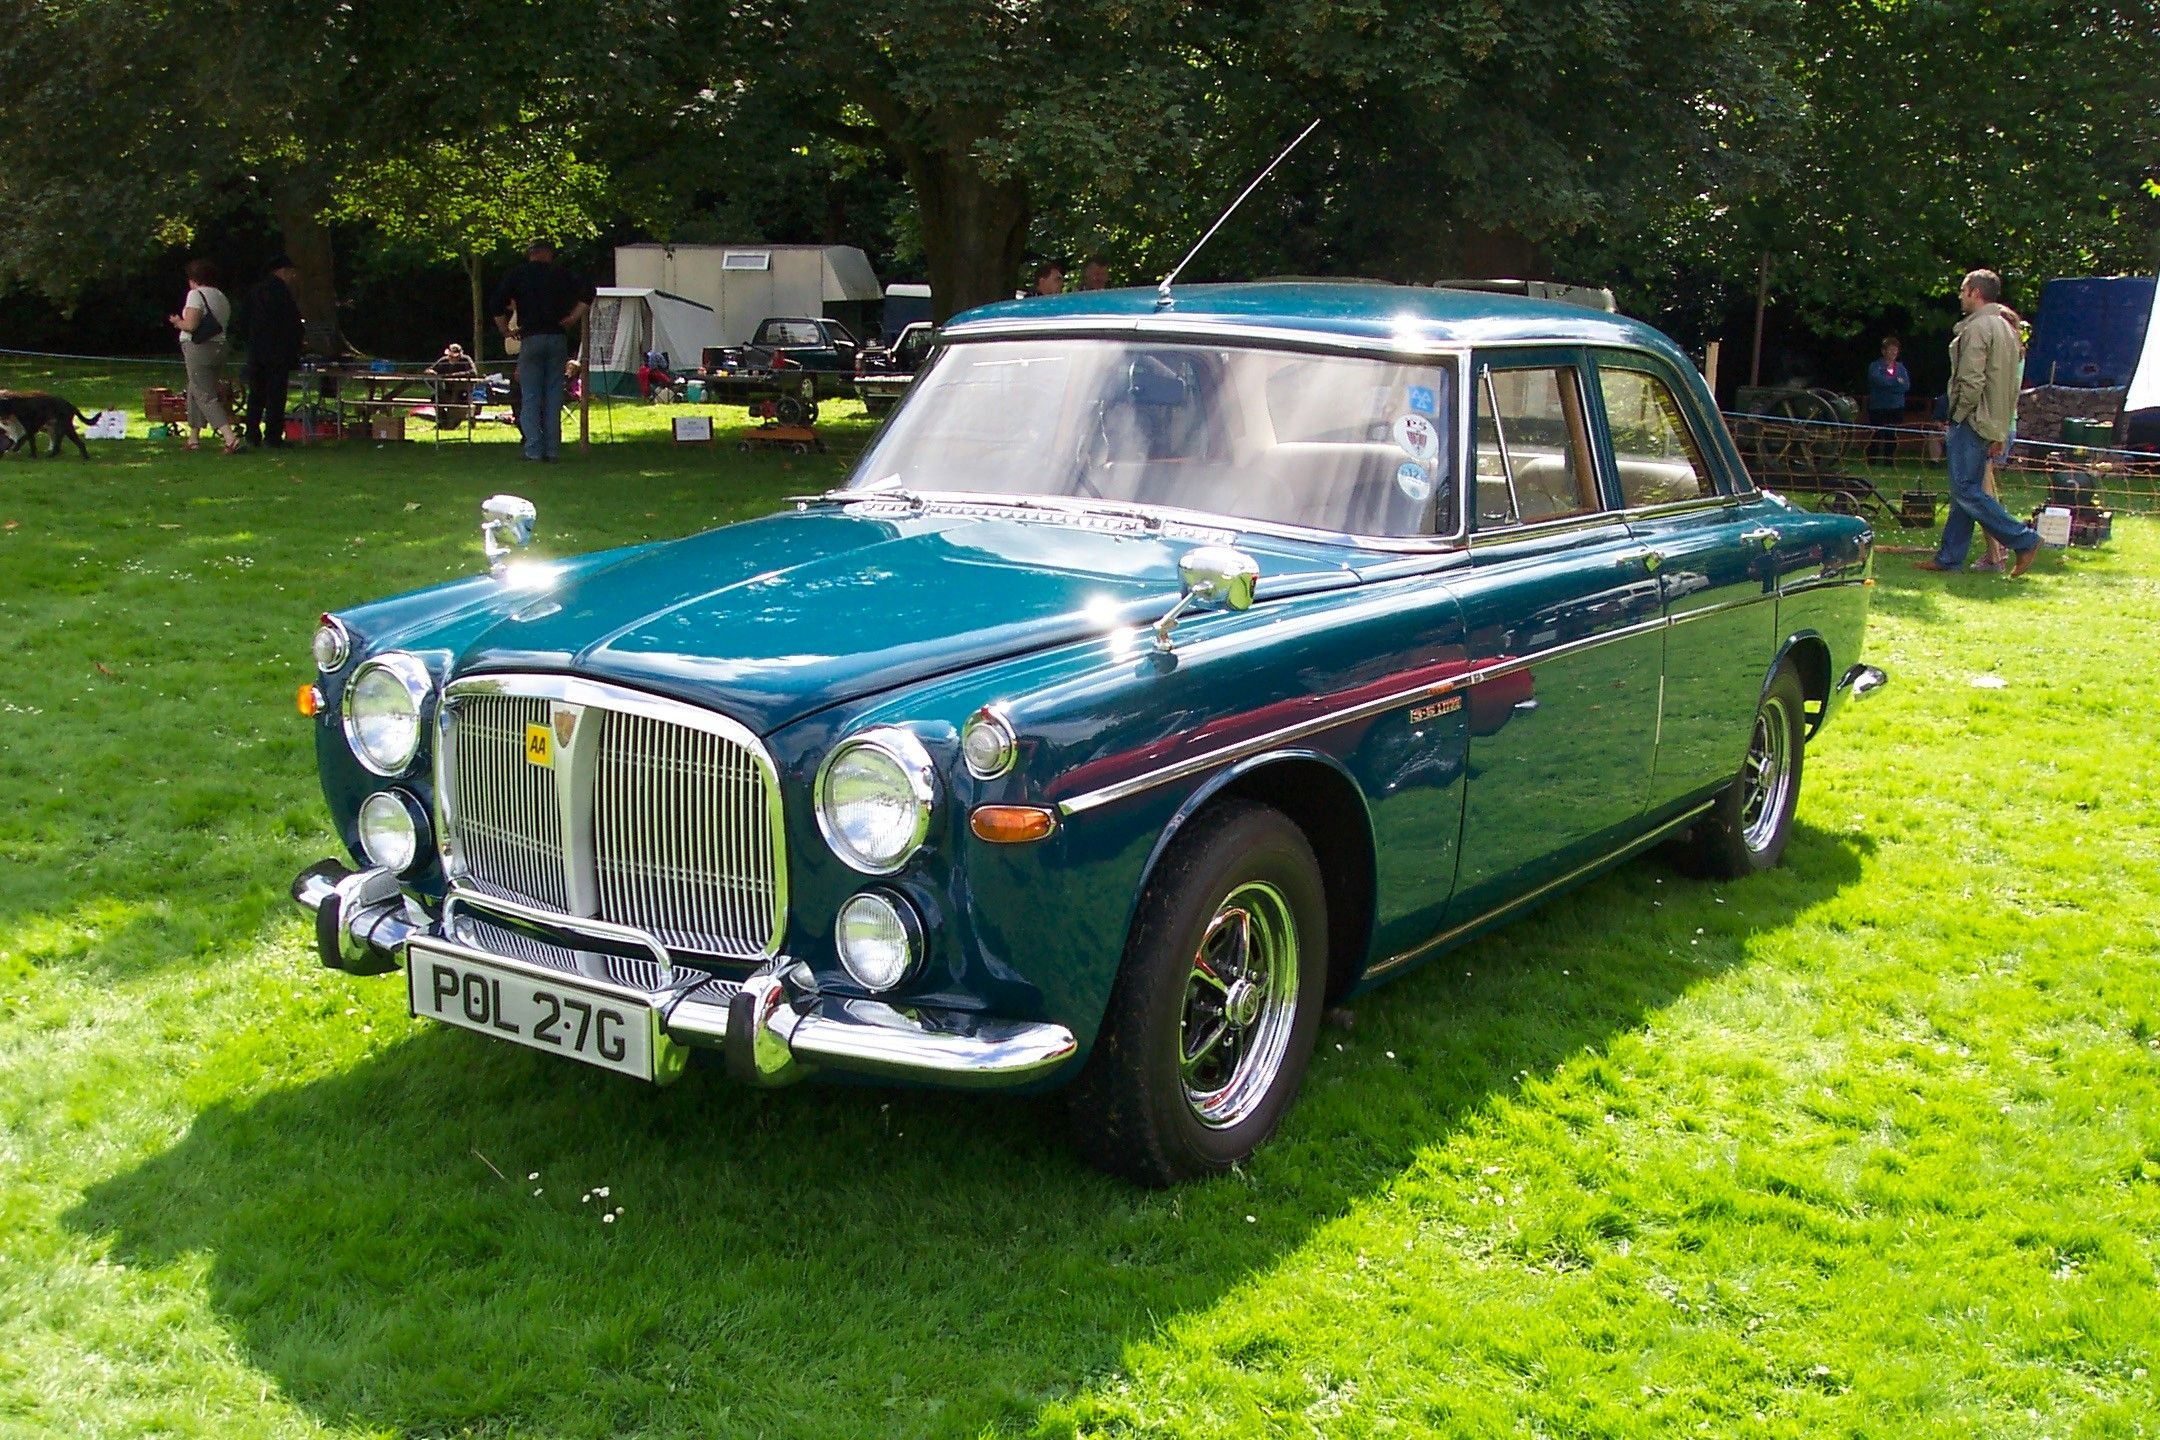 Rover P5 3500 best of the line as used by Government